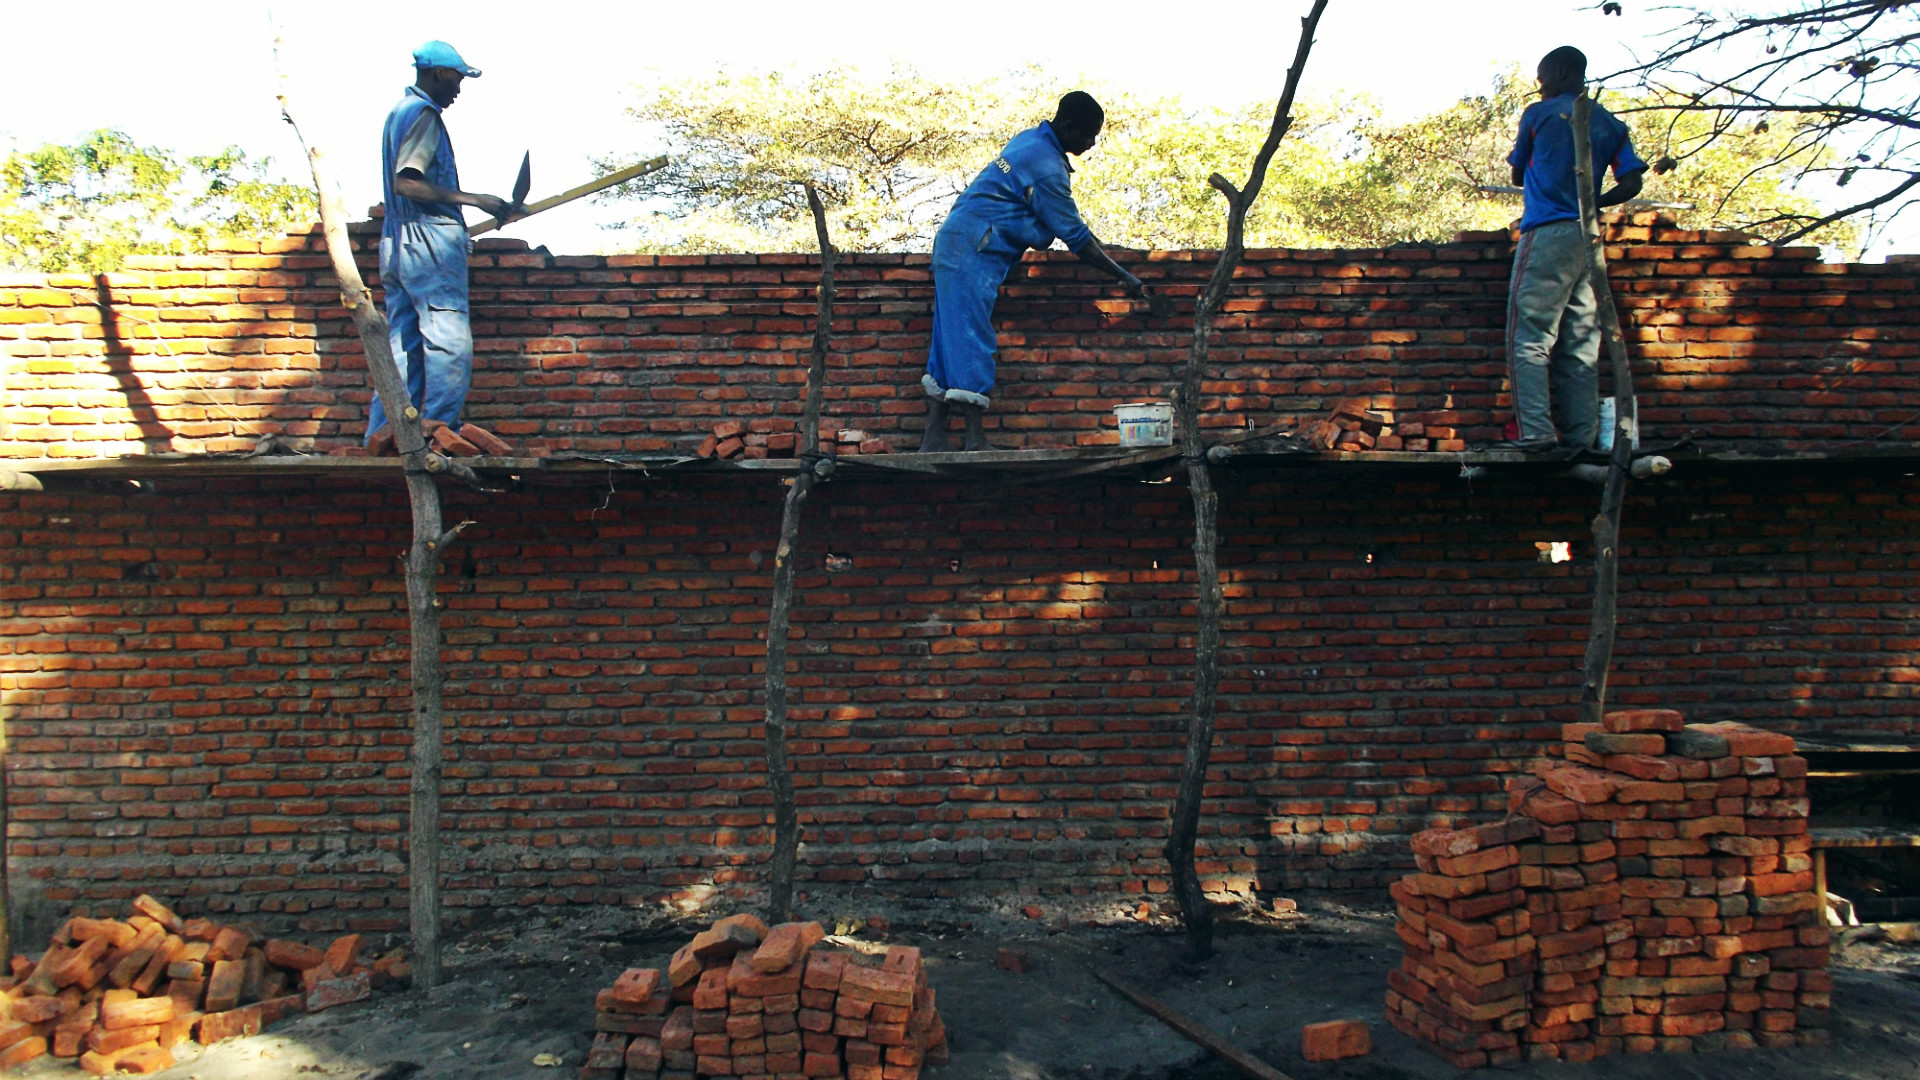 Construction Time in Malawi